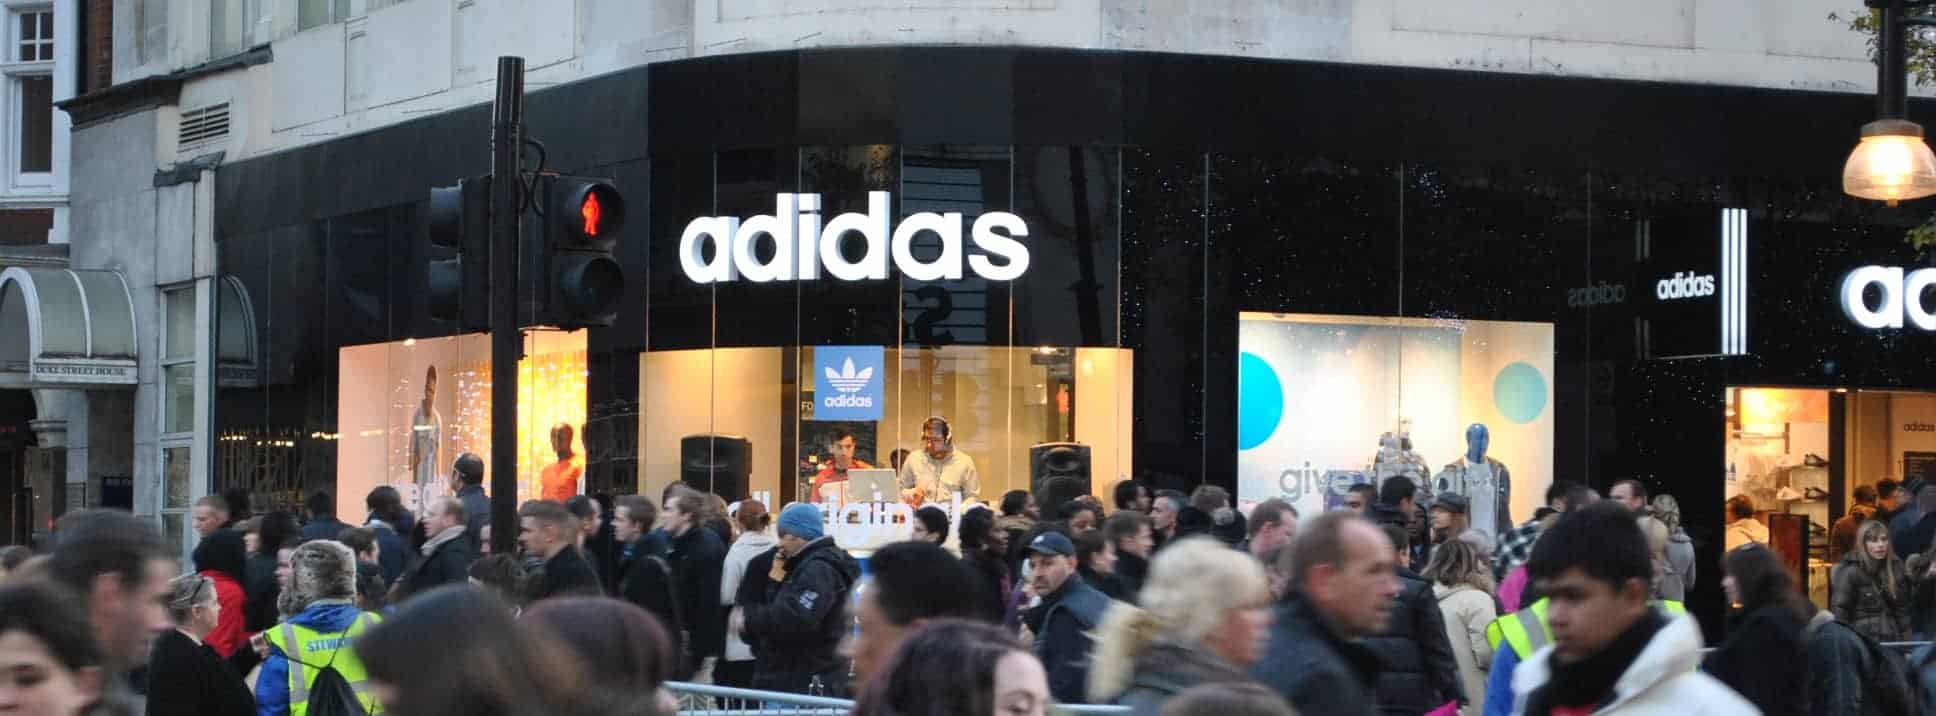 Adidas London - Storm DJs - DJ hire